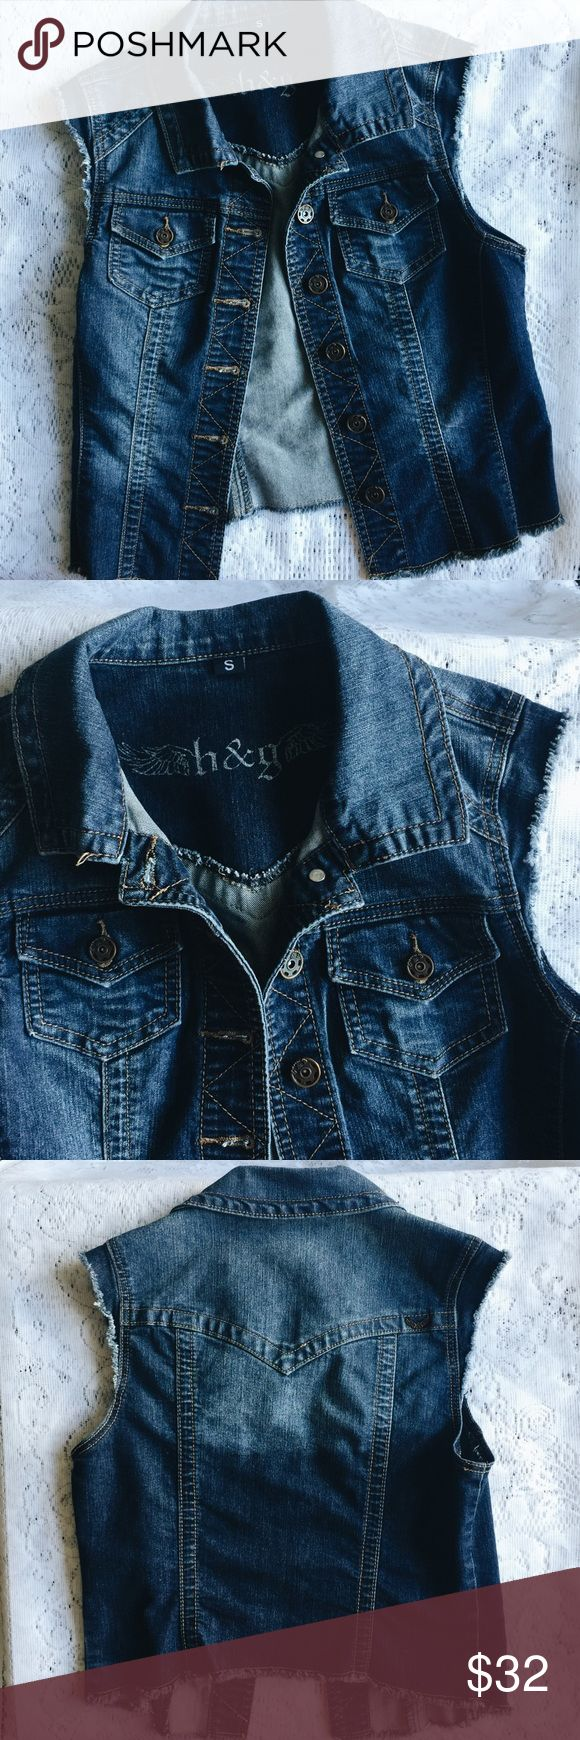 medium wash denim vest h&G brand, purchased at a boutique in Los Angeles. Worn once, very comfortable and lightweight. Perfect condition! Dress it up with pins & patches! Listing as Brandy Melville for exposure 💕 Brandy Melville Tops